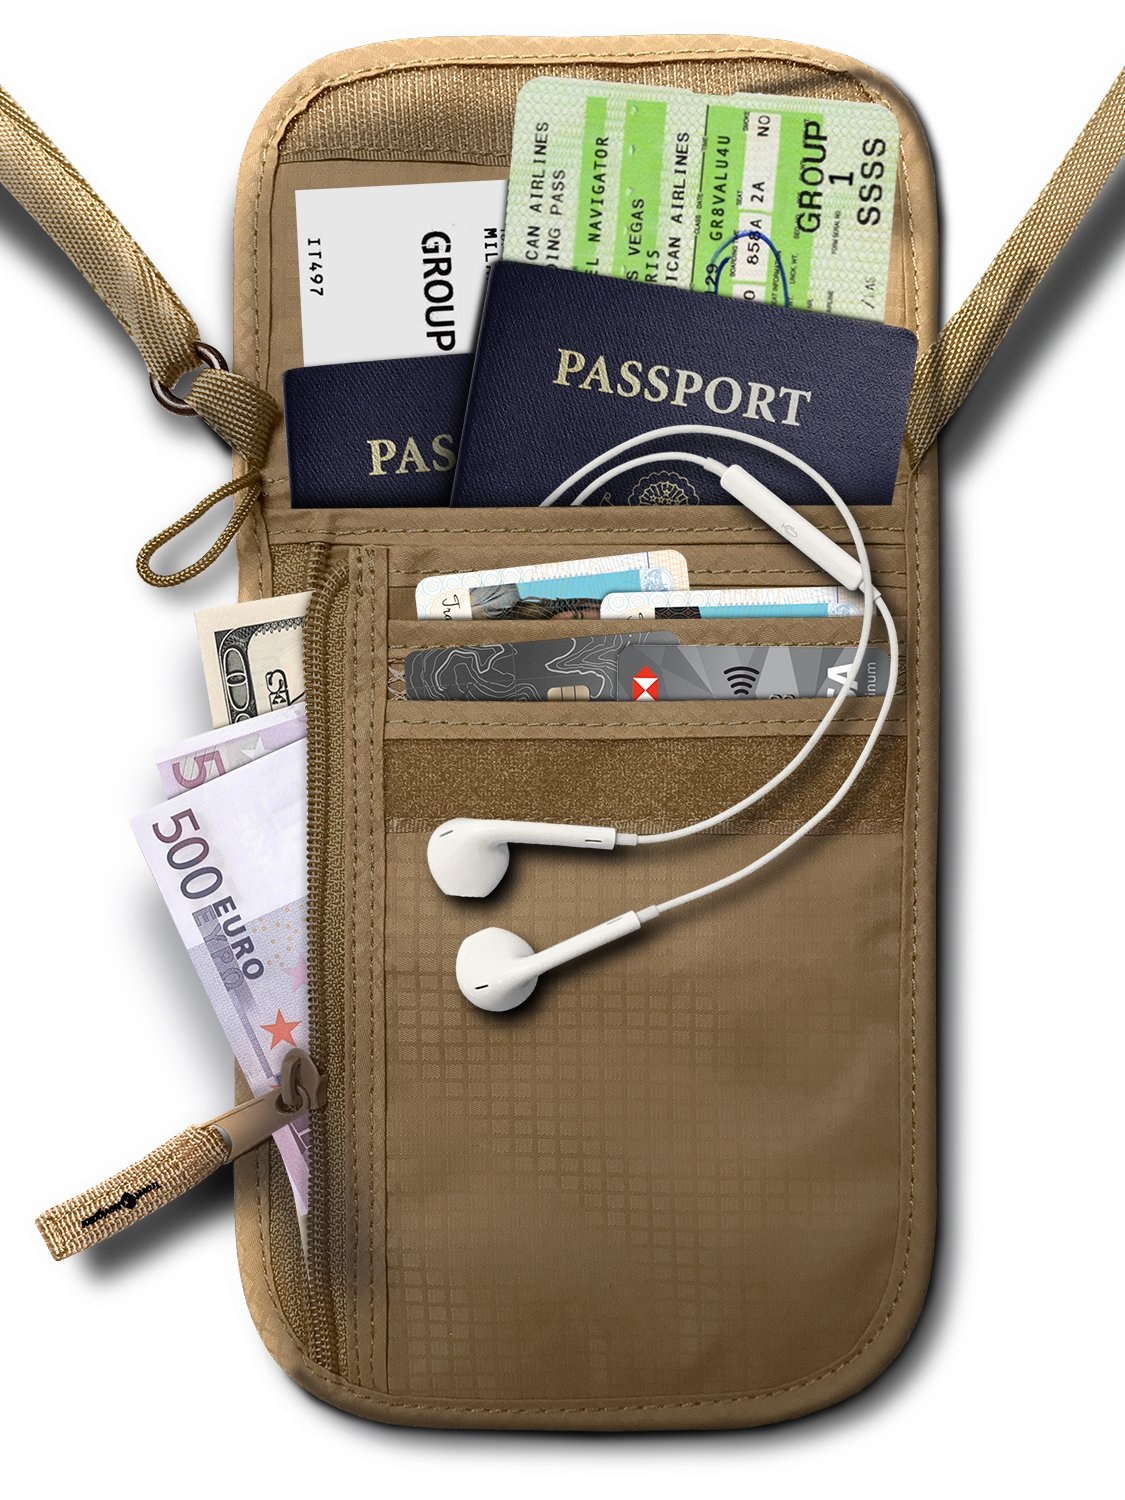 RFID Blocking Neck Stash Passport, Unisex, Tan